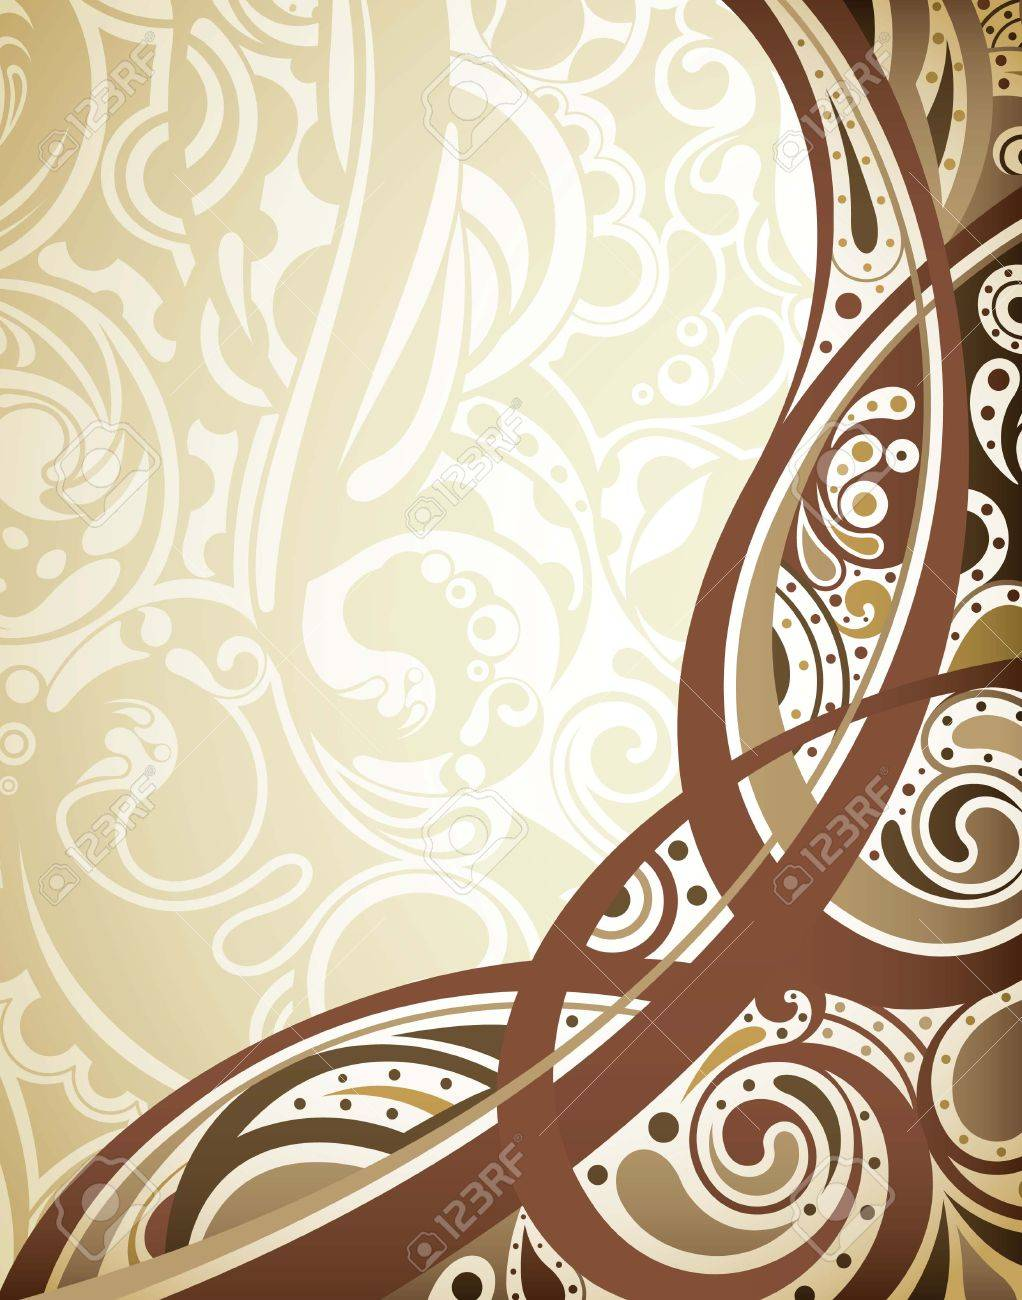 abstract chocolate curve background royalty free cliparts vectors and stock illustration image 27293410 abstract chocolate curve background